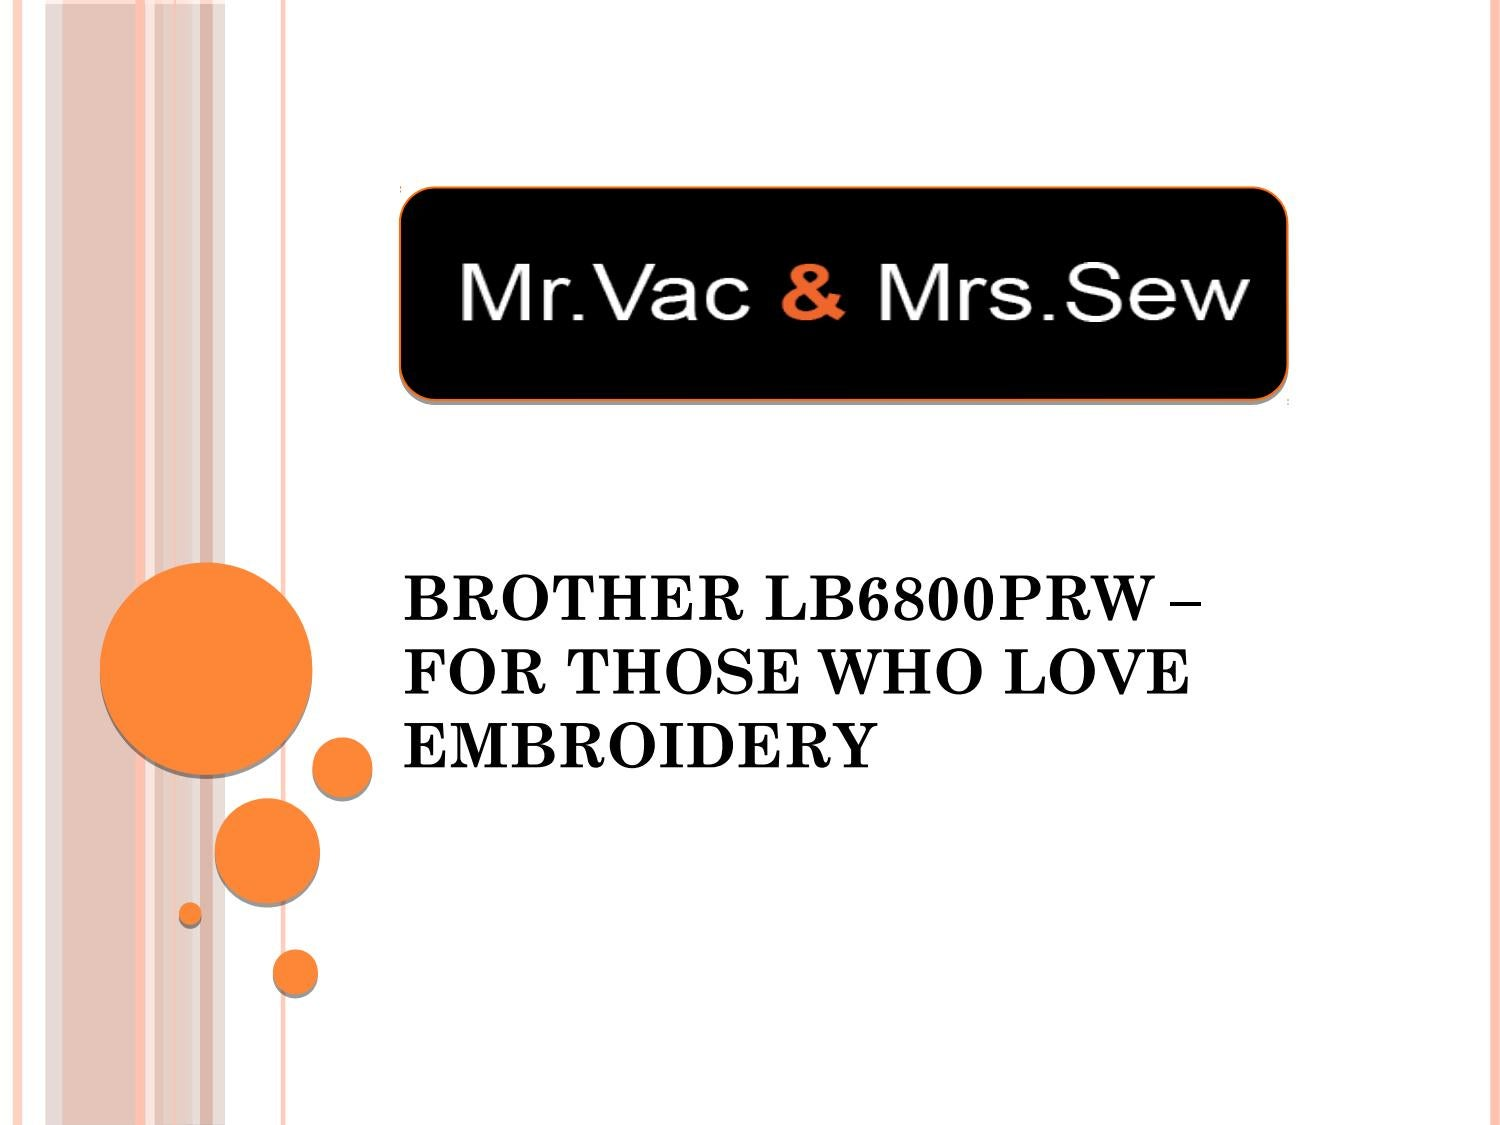 Brother Lb6800prw For Those Who Love Embroidery By Mr Vac And Mrs